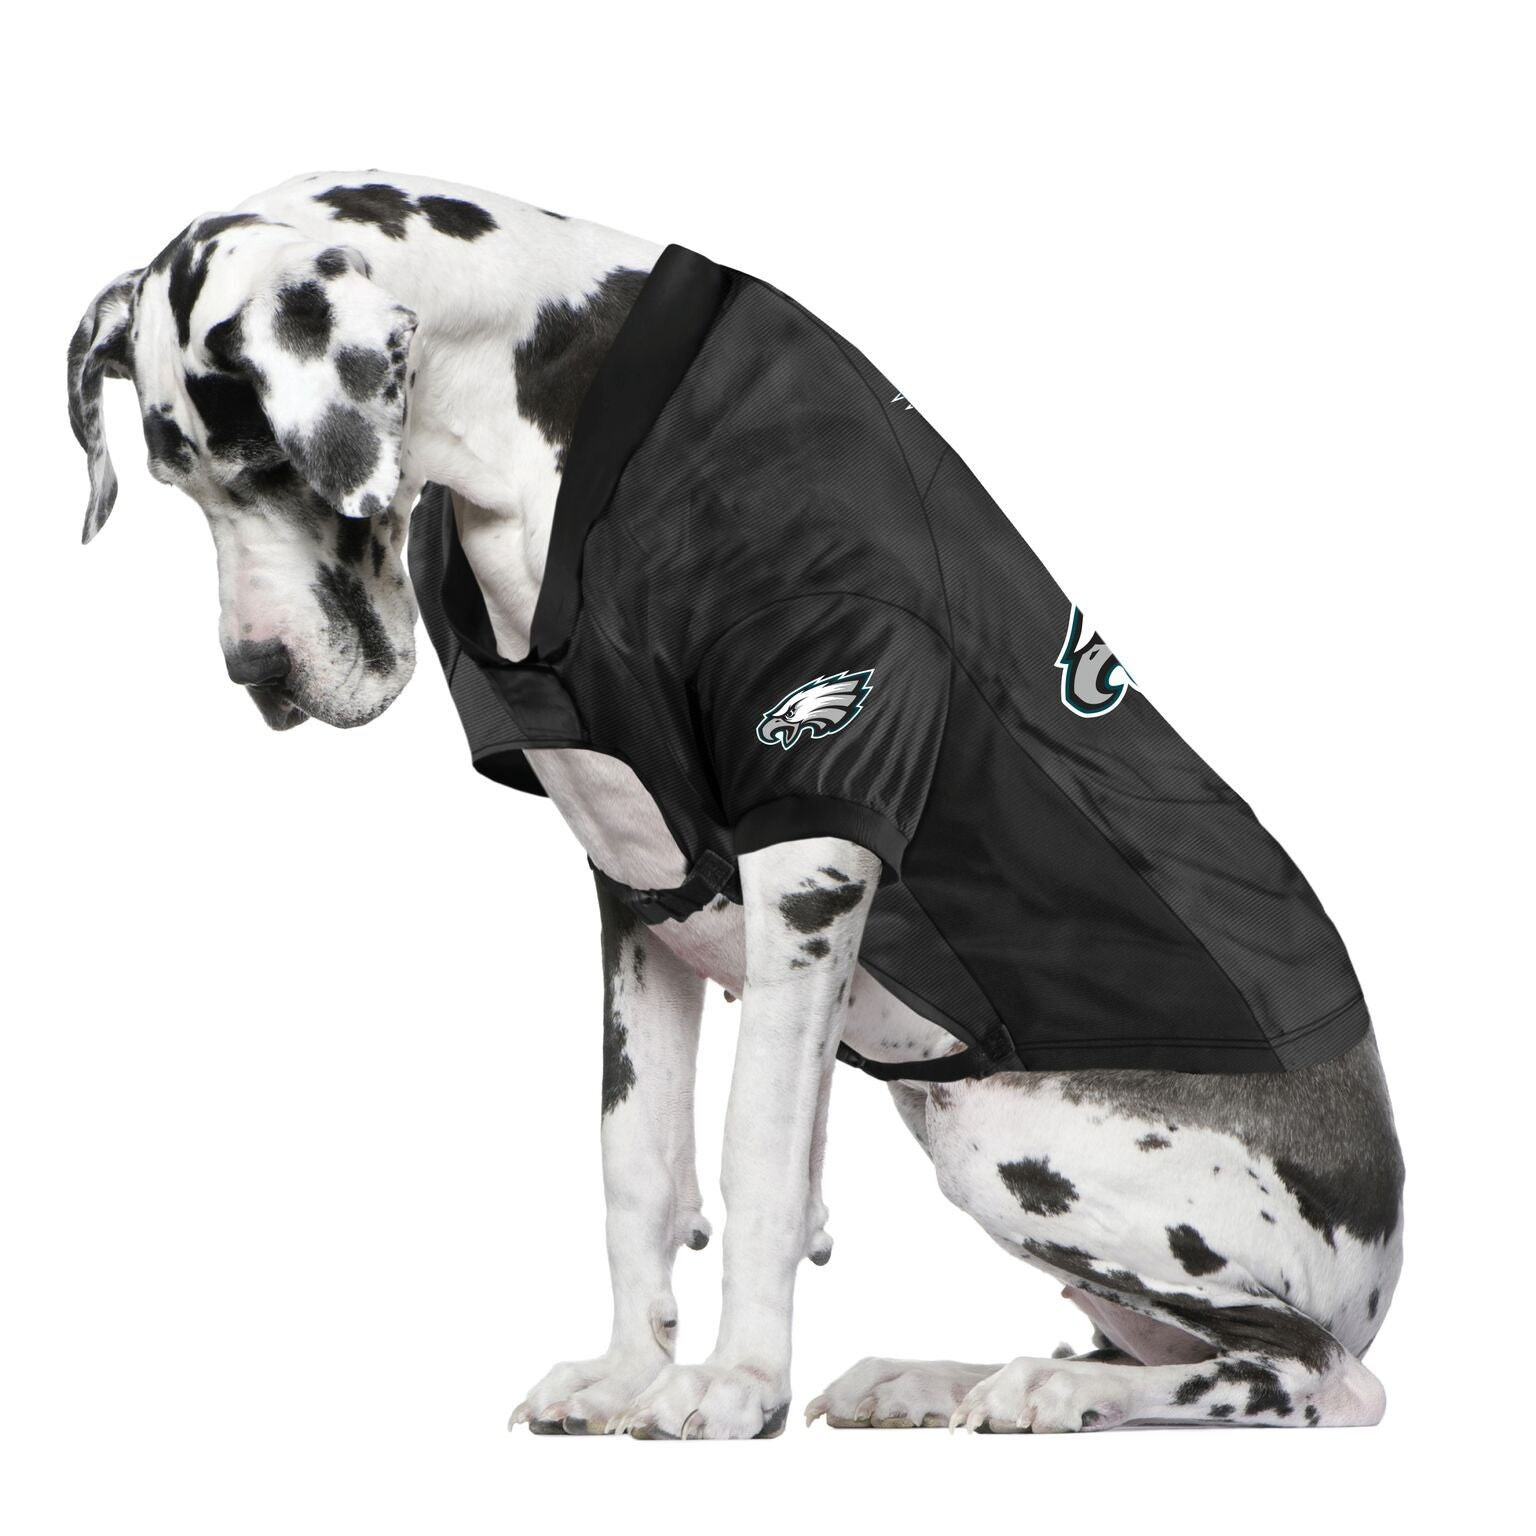 Eagles Fan Jersey For Your Dog